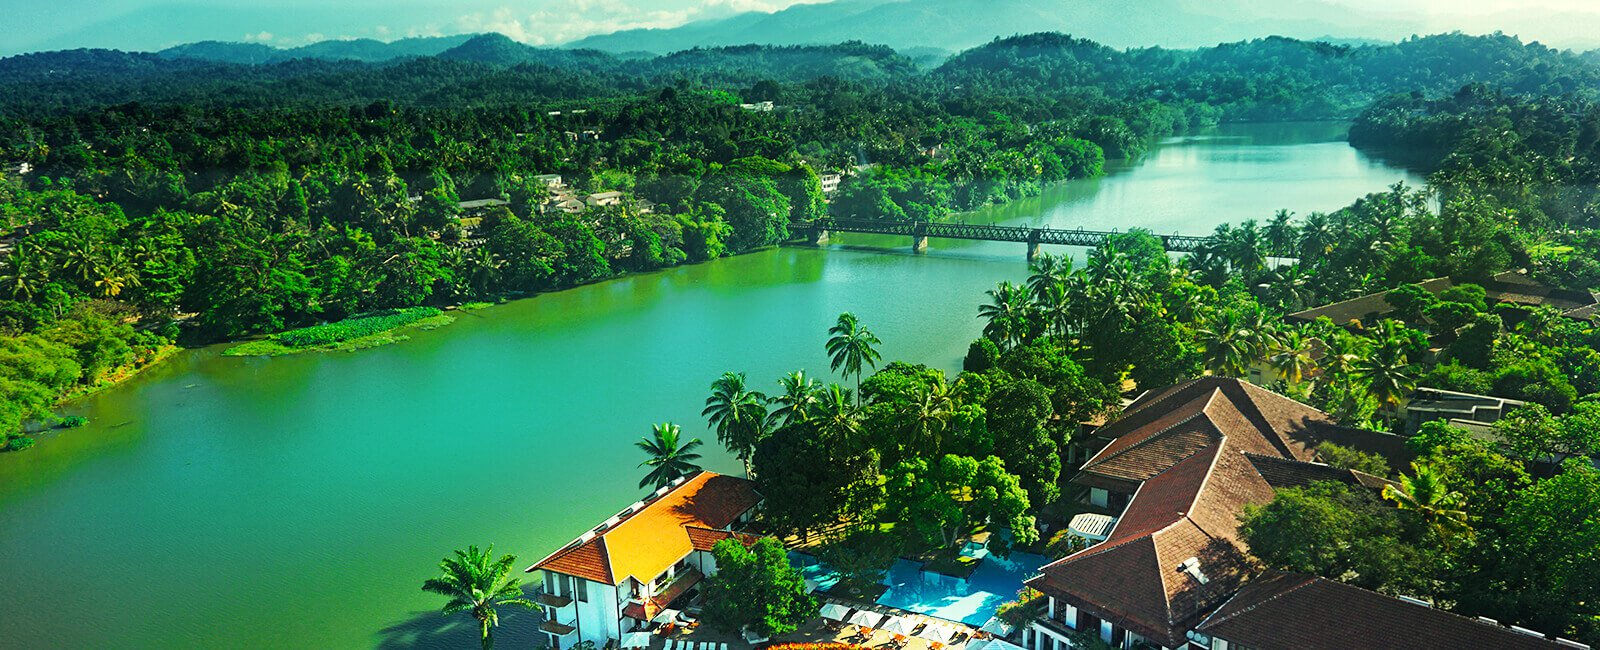 Aerial View of Mahaweli Reach Hotel and Mahaweli River in Kandy